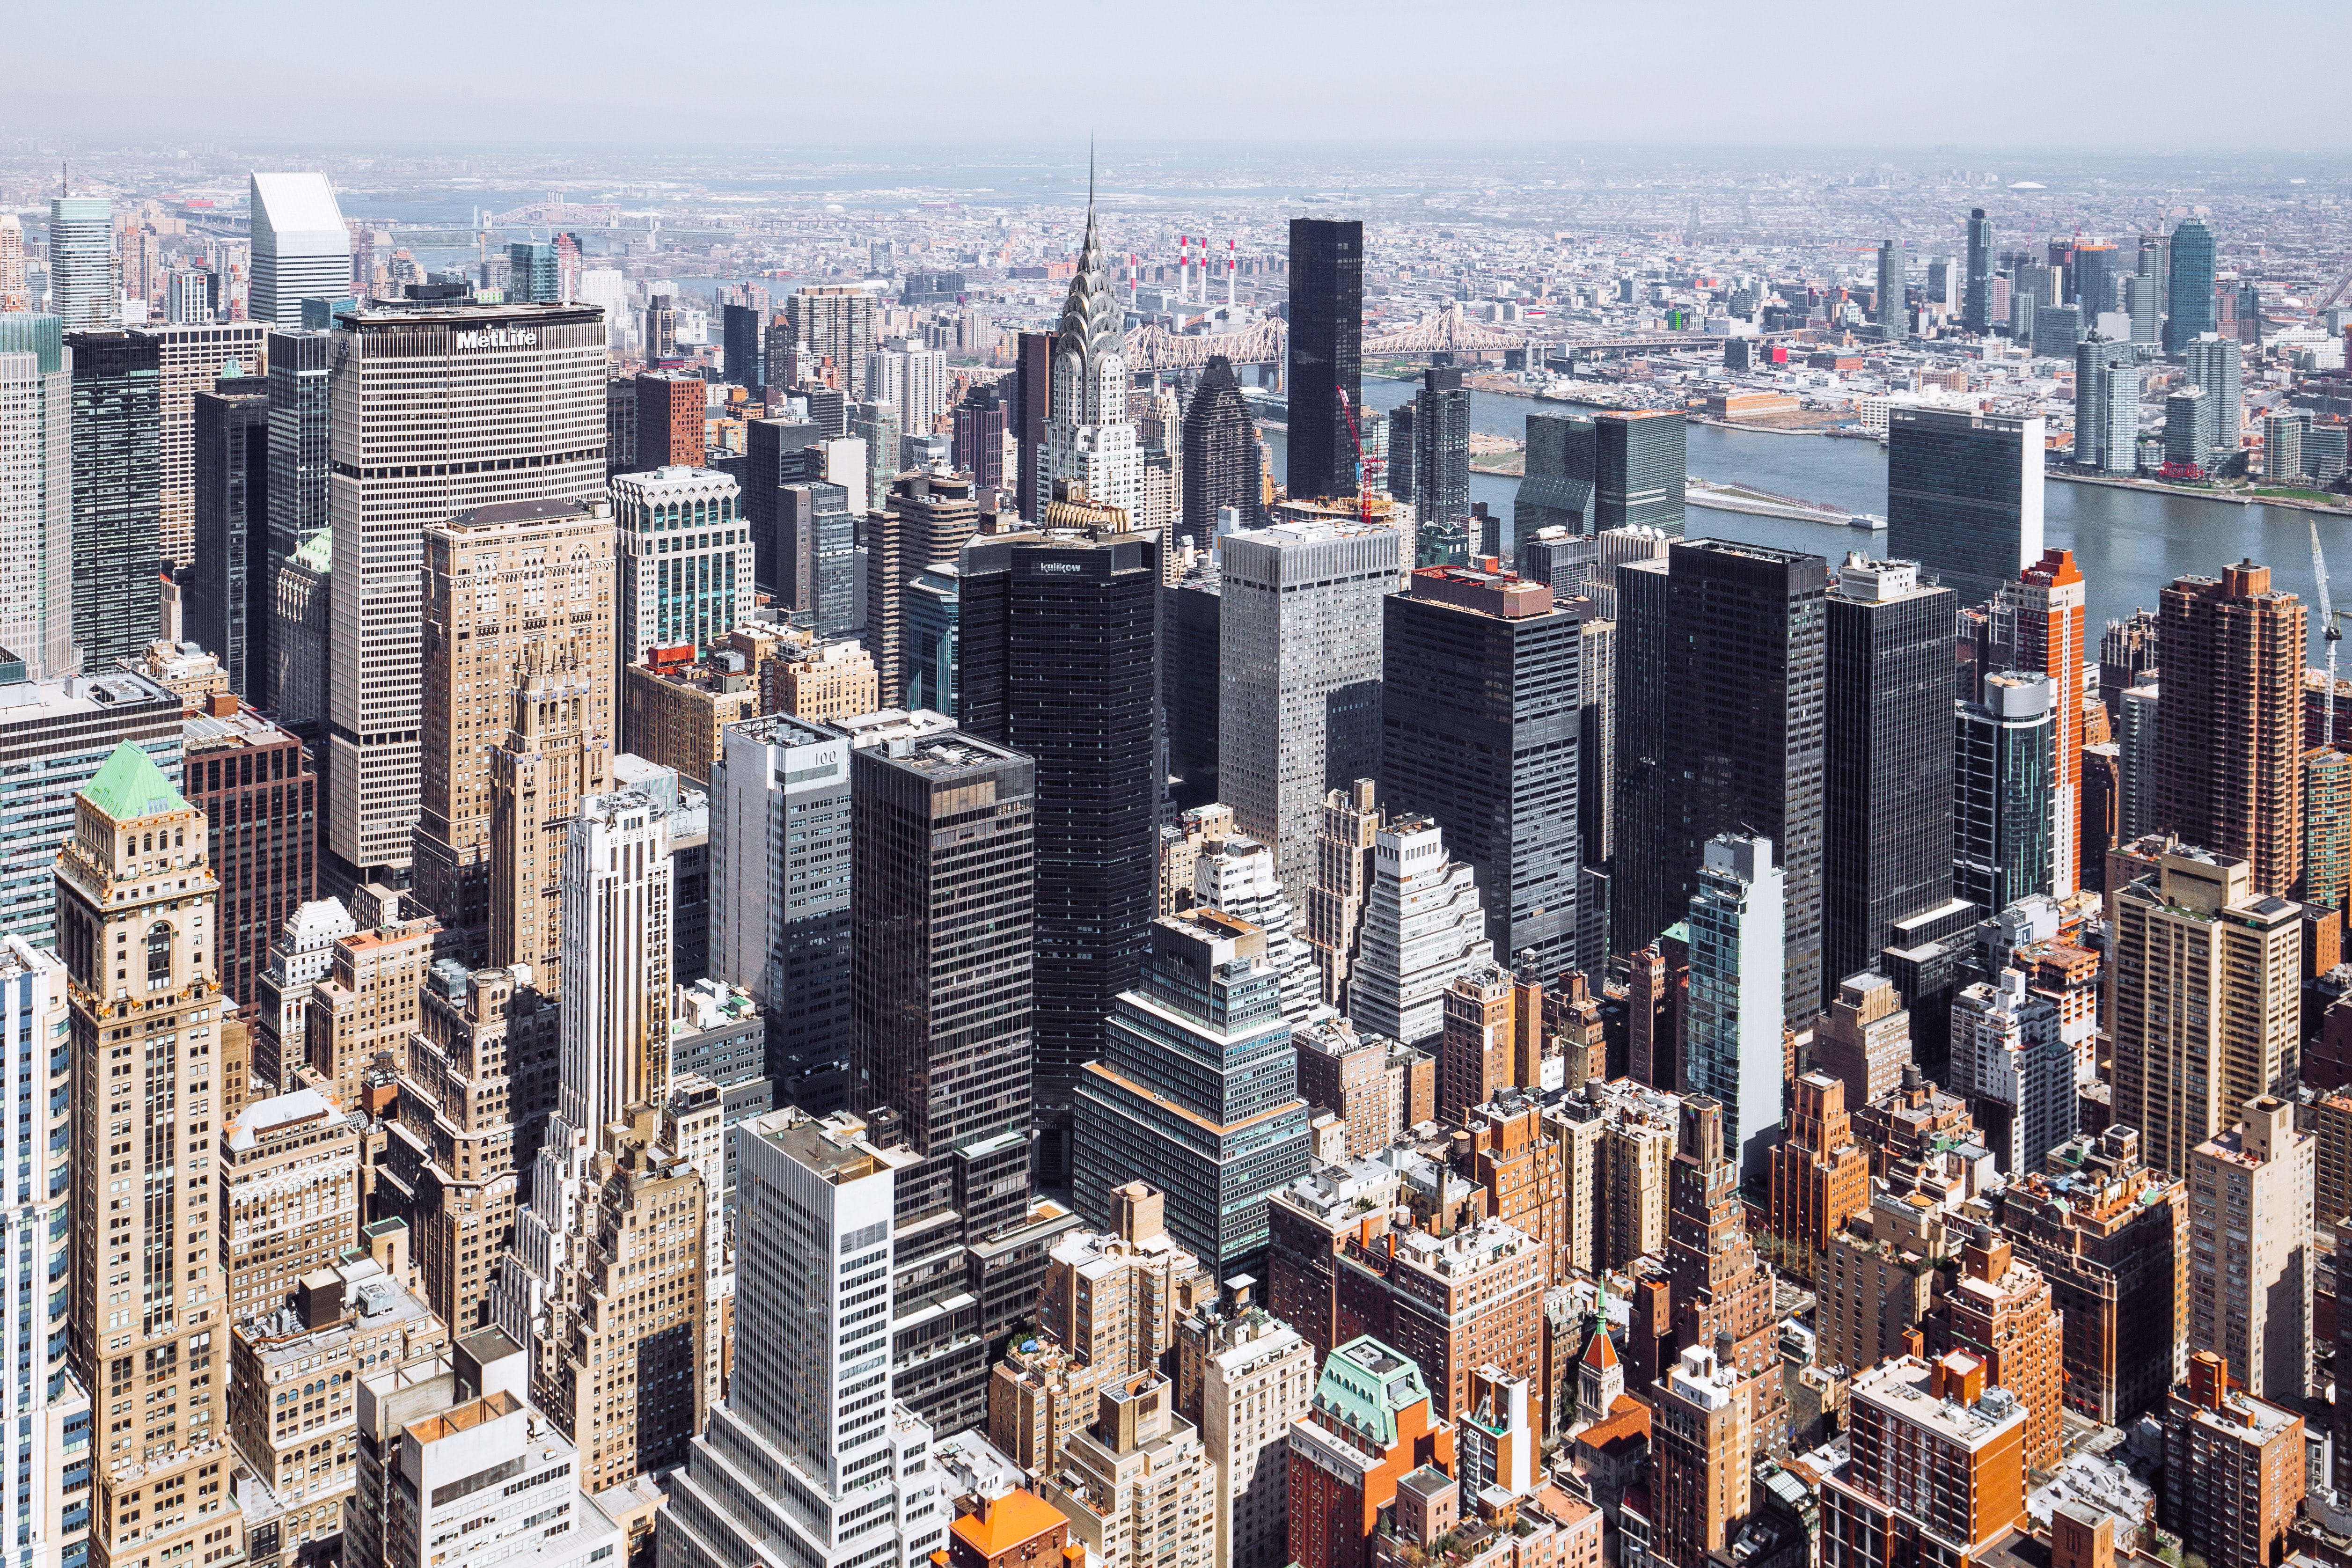 aerial photography of the city at daytime